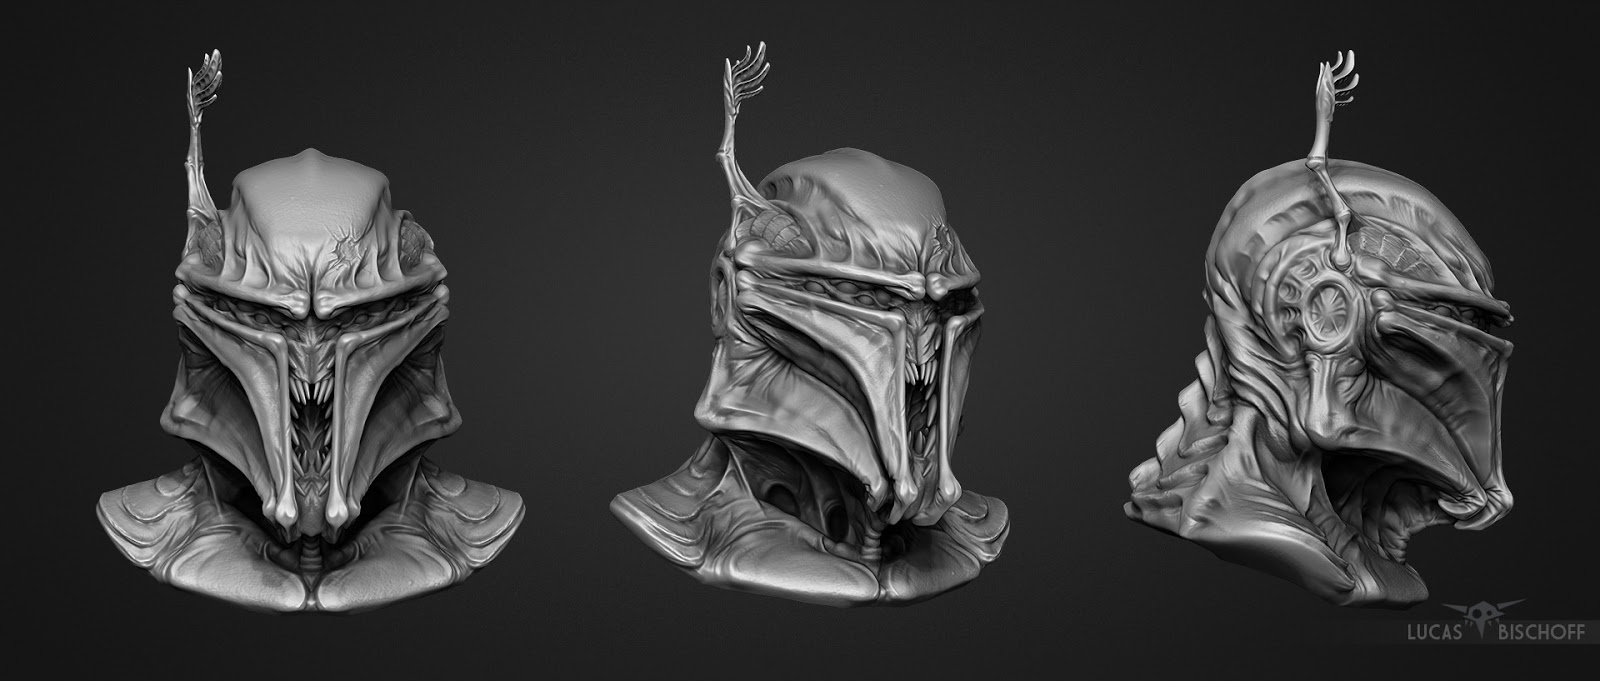 Star Wars Stormtroopers Fantasy Art Artwork Bwing Down: The Movie Sleuth: Images: A Collection Of Monstrous Star